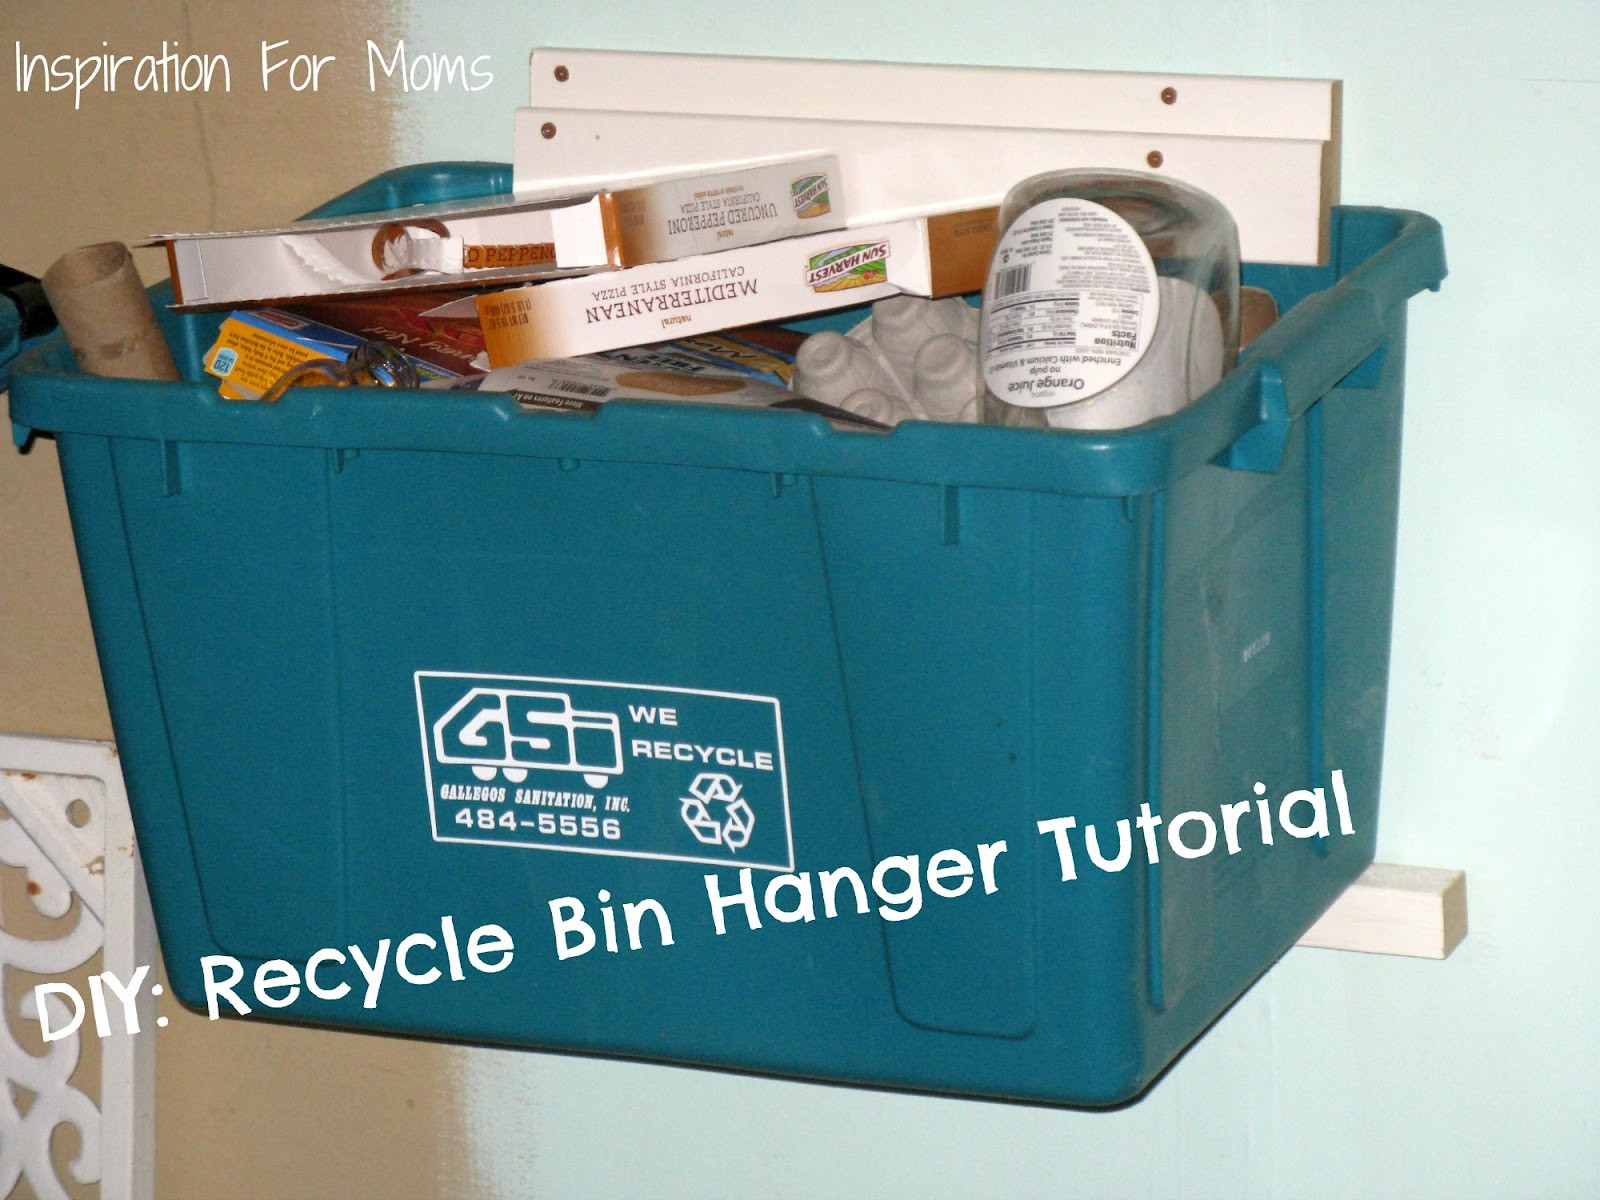 Best ideas about DIY Recycling Bins . Save or Pin DIY Recycle Bin Hanger Tutorial Inspiration For Moms Now.